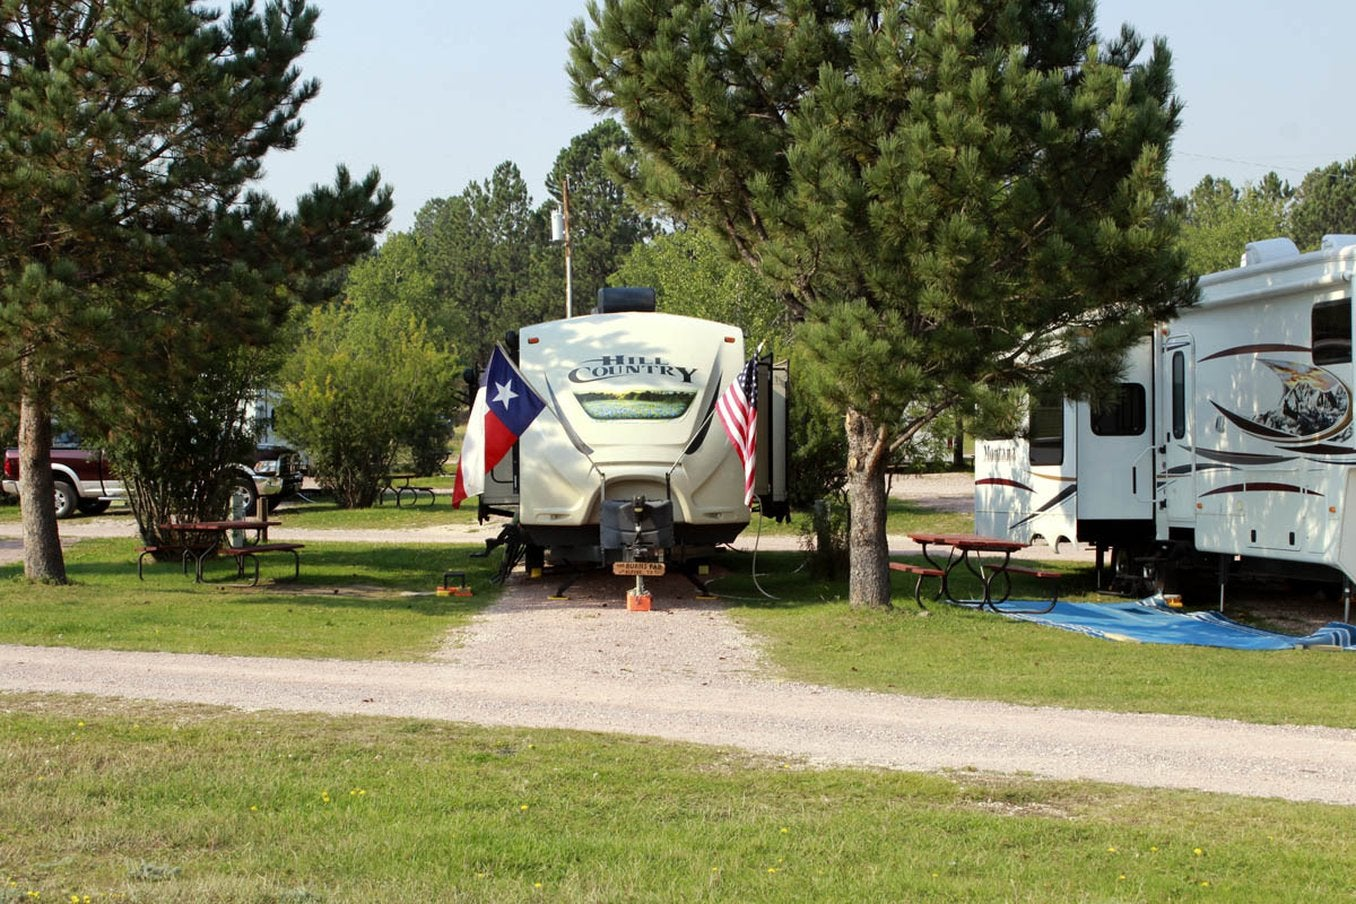 camper trailer backed into campsite between pine trees with a texas and american flag on each side